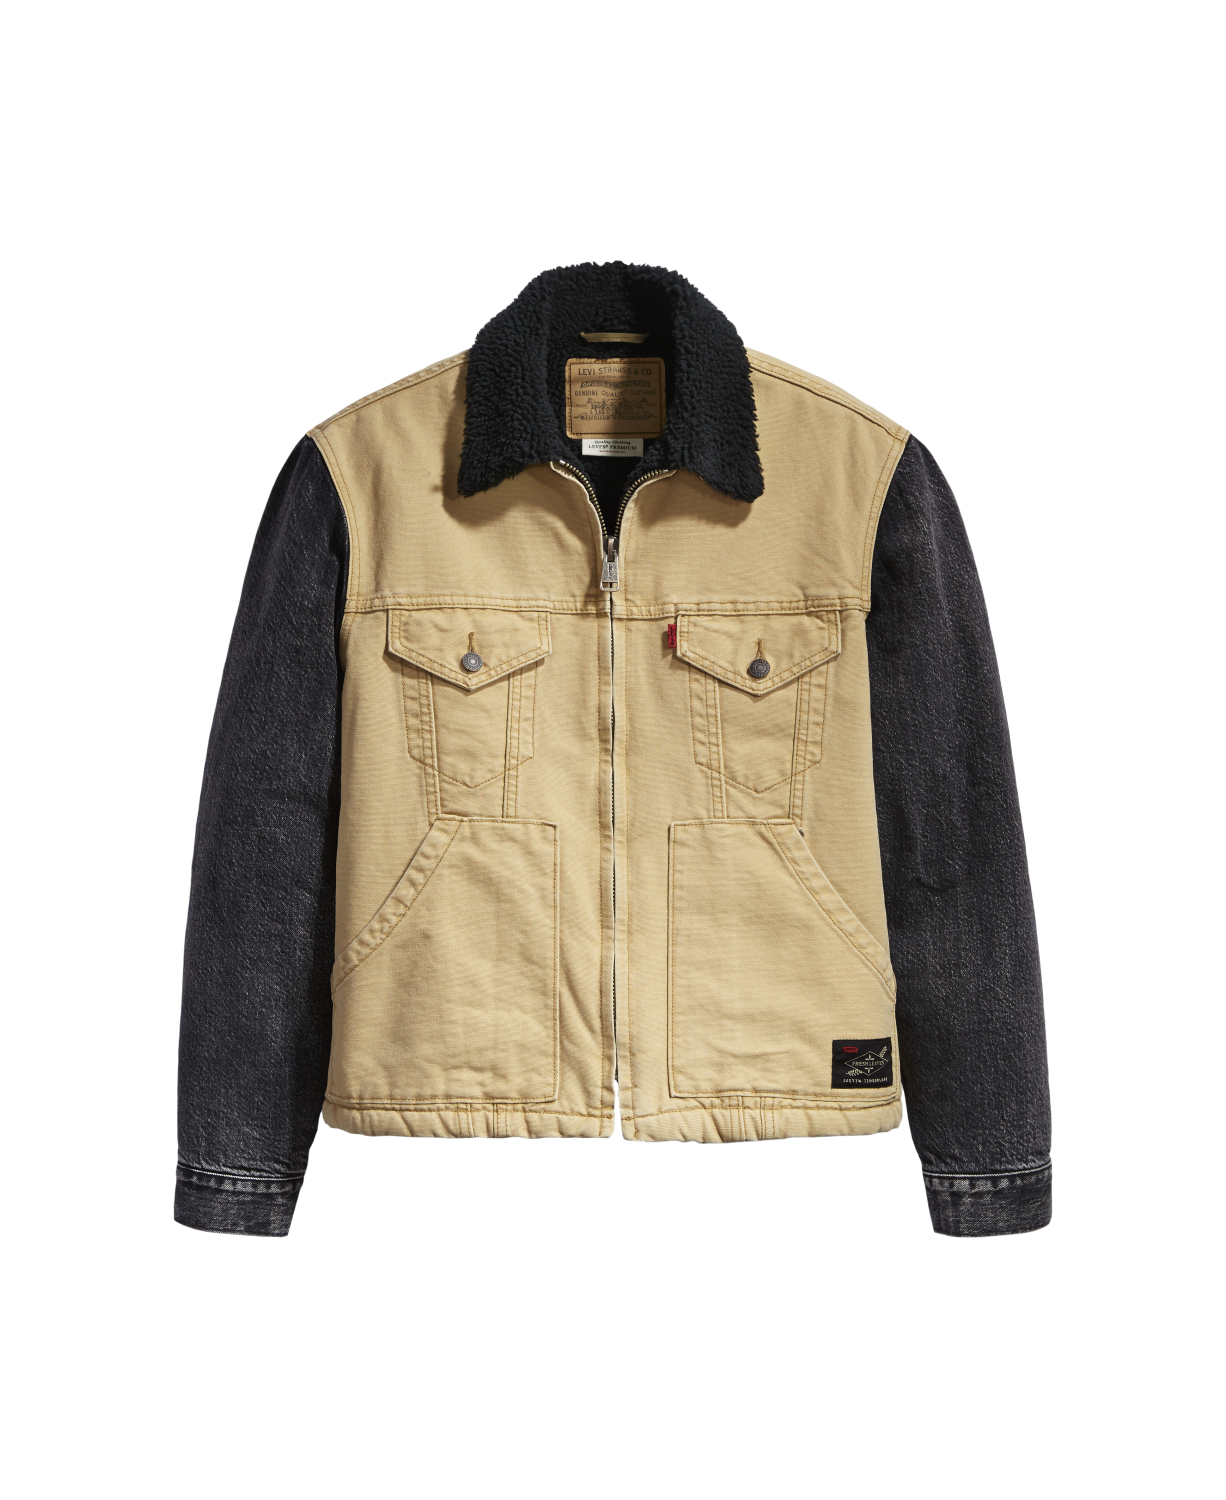 Levi's X Justin Timberlake Fresh Leaves Limited Edition